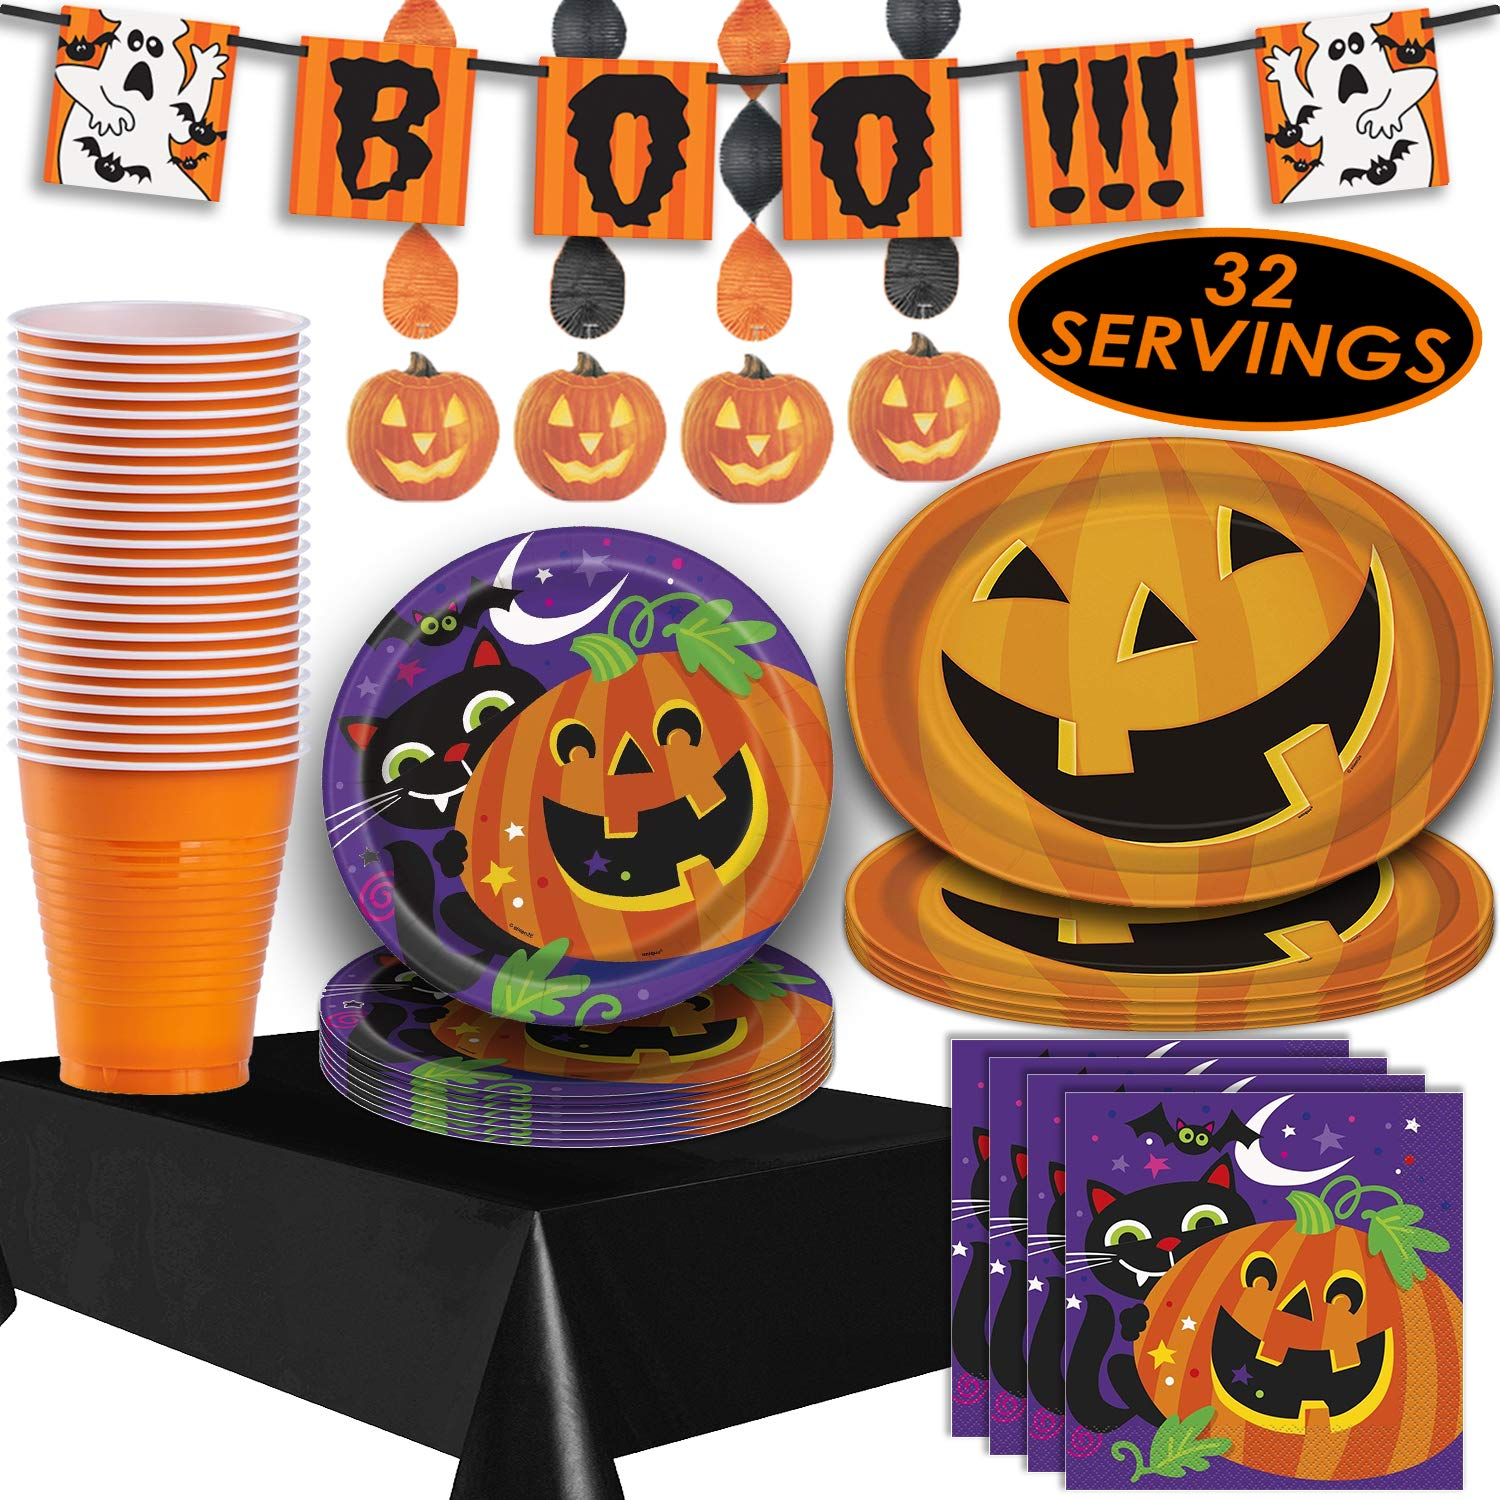 Halloween Tableware and Decorations - 32 Guest - Dinner Plates, Party Cups, Napkins, Tablecloths, Serving Trays, Pumpkin Hanging Swirls, 4 Foot''BOO!!!'' Banner by HeroFiber